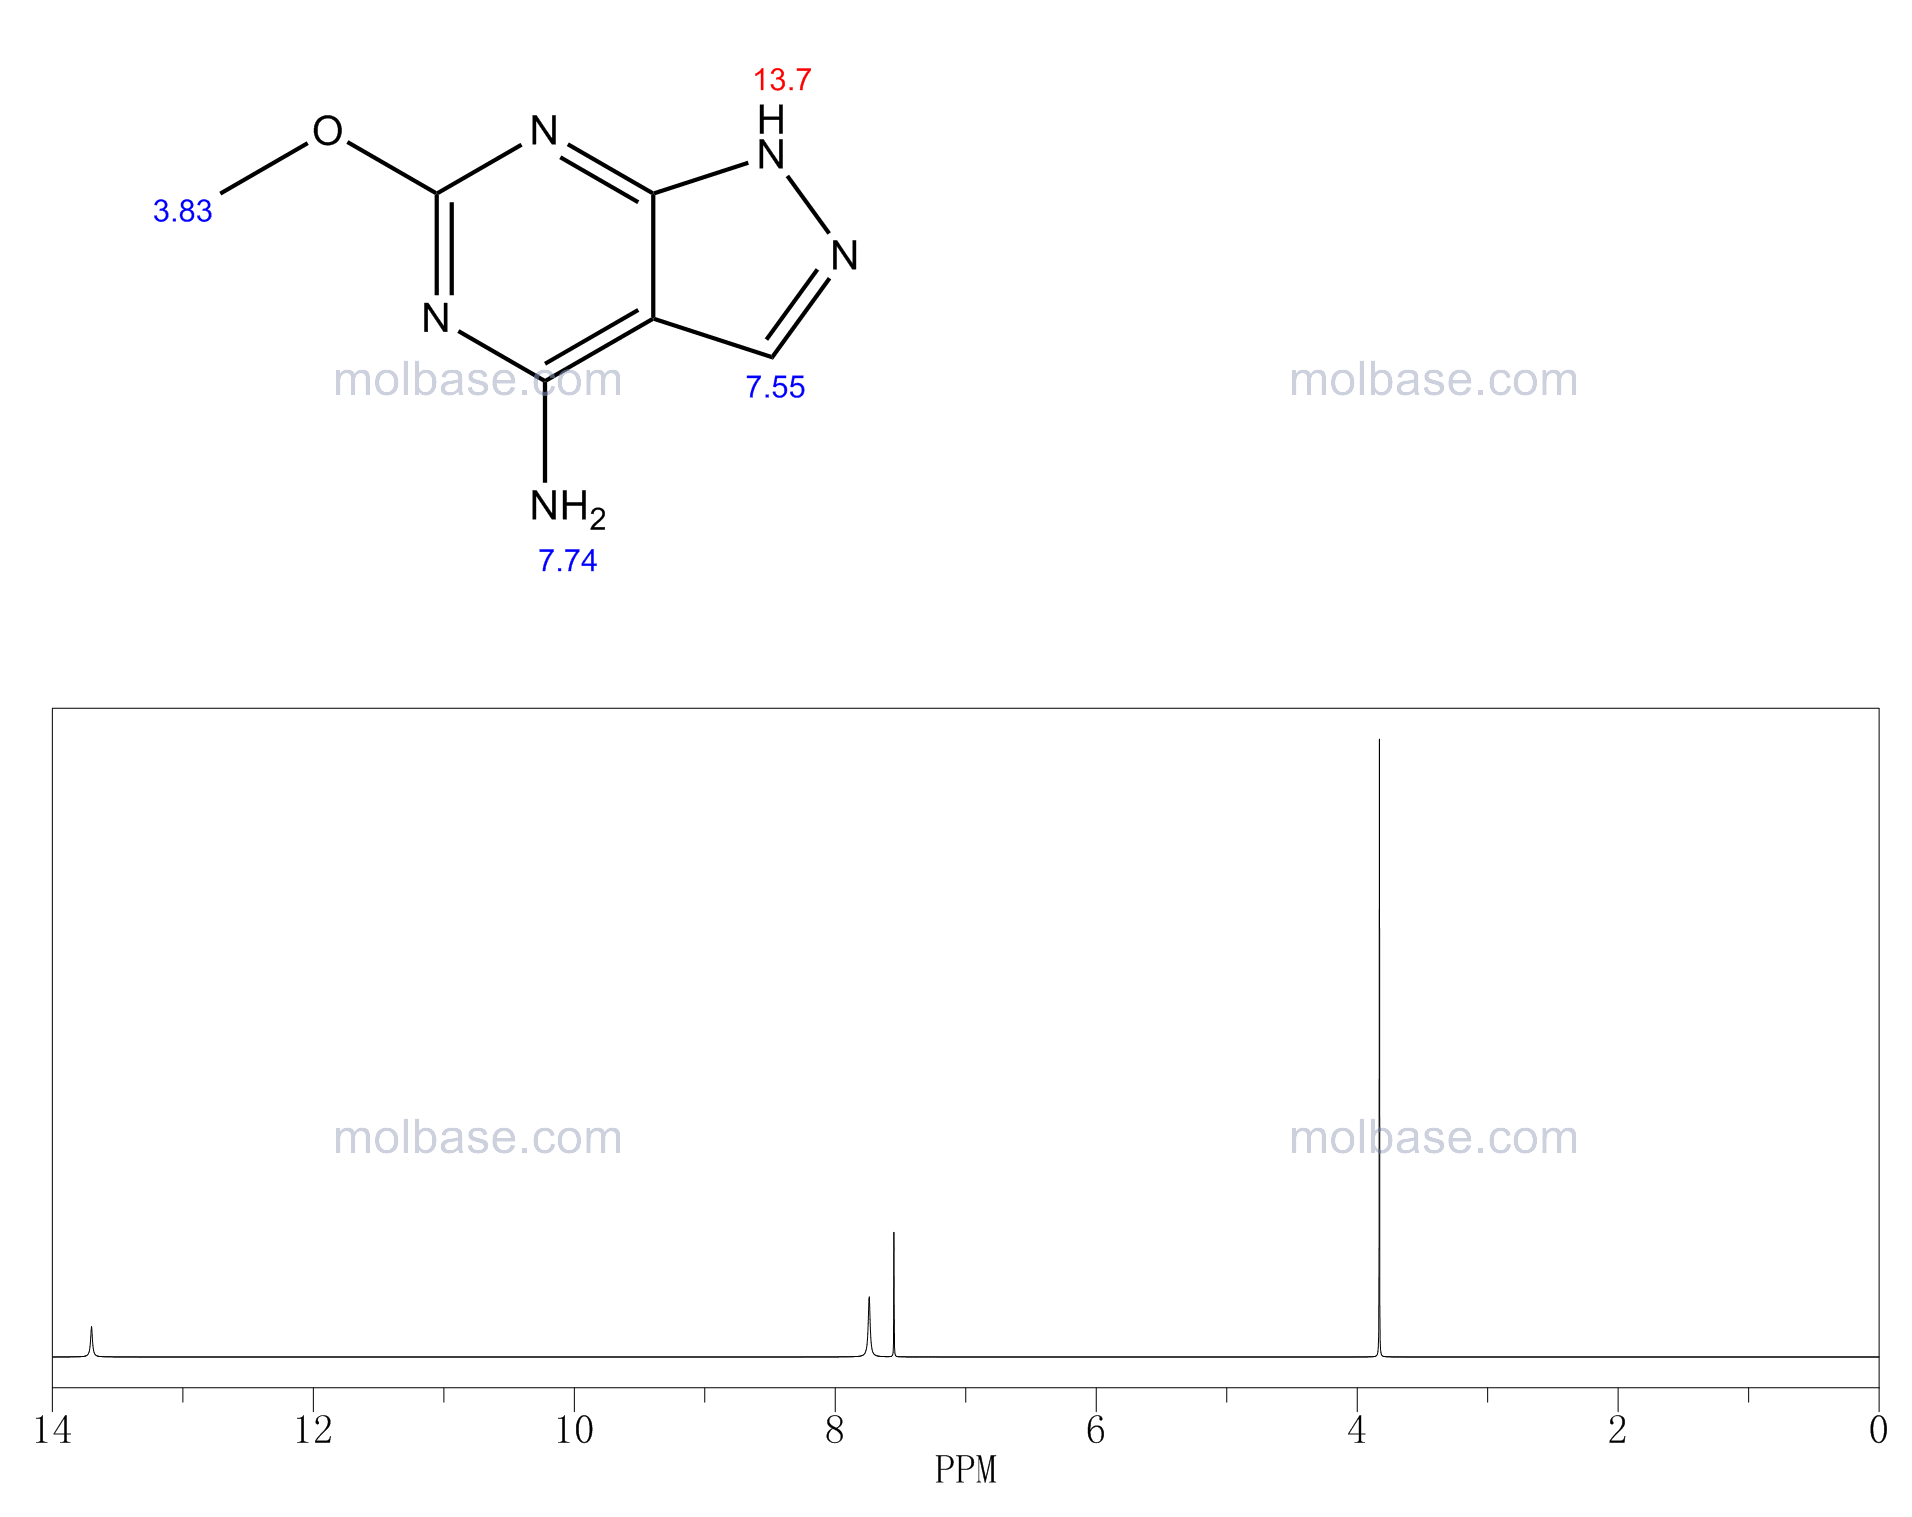 6-methoxy-1H-pyrazolo[3,4-d]pyrimidin-4-amine NMR spectra analysis, Chemical CAS NO. 100605-51-4 NMR spectral analysis, 6-methoxy-1H-pyrazolo[3,4-d]pyrimidin-4-amine C-NMR spectrum